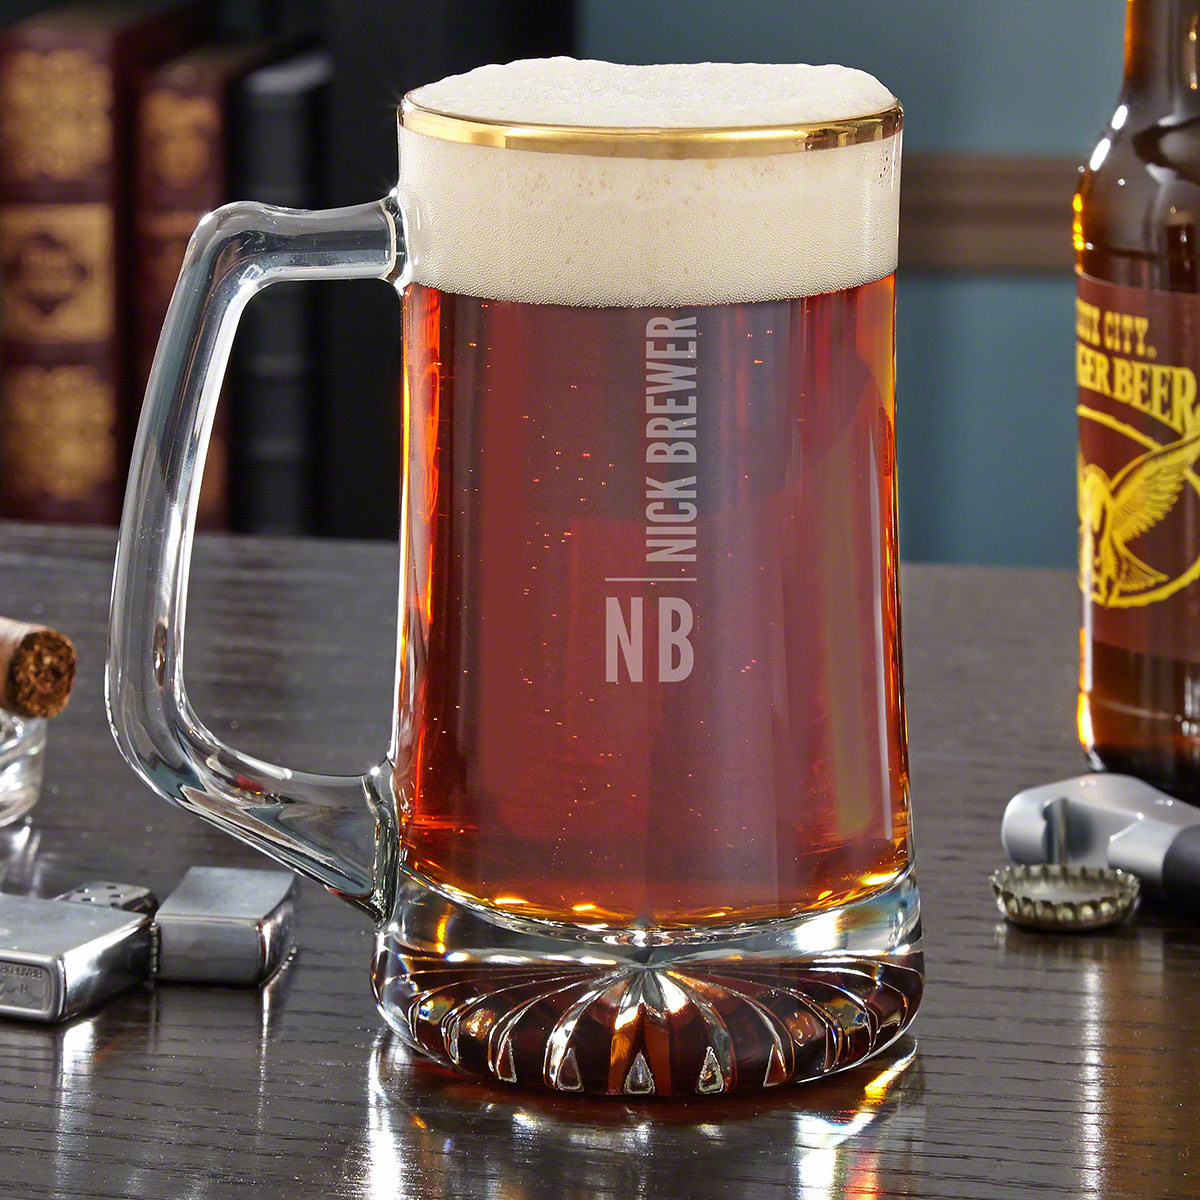 You know when you go to a brewery or a nice bar and they serve you beer in these big, heavy mugs? It makes you feel like a Viking. With your own personalized beer mug, you can enjoy that feeling whenever you want! This large mug is hefty, sturdy, and perf #mug